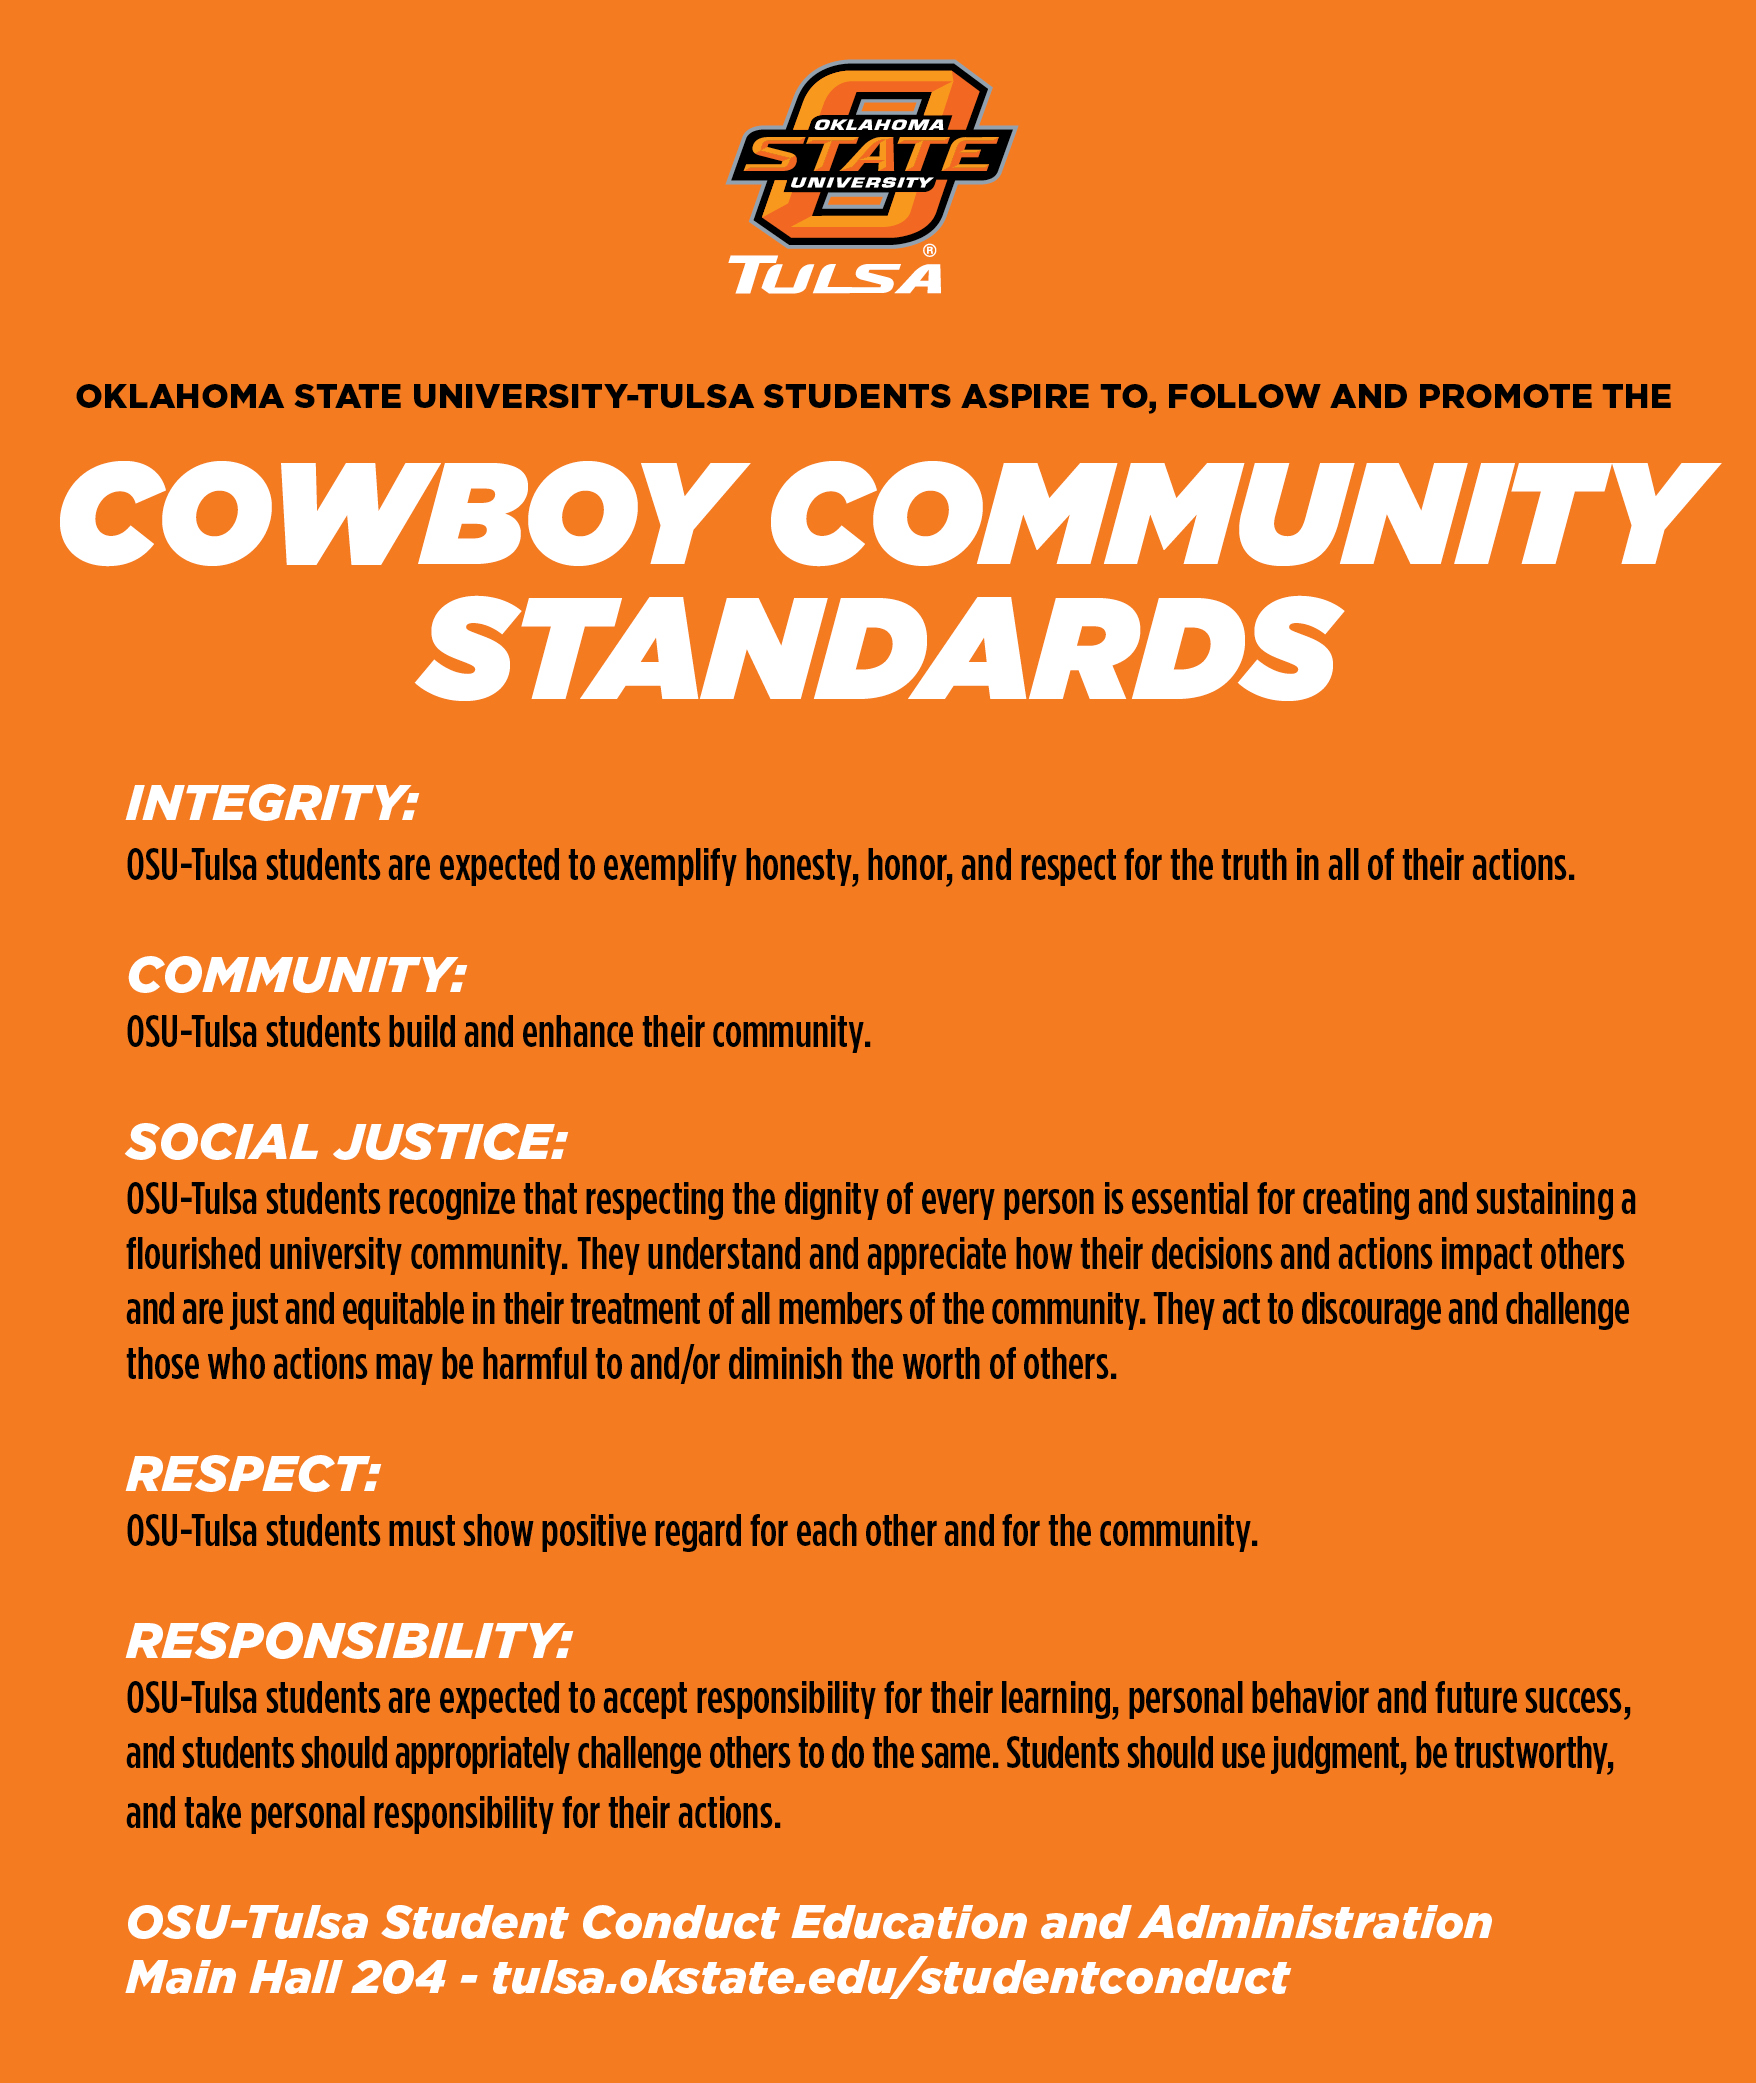 Cowboy Community Standards Graphic - click for text.